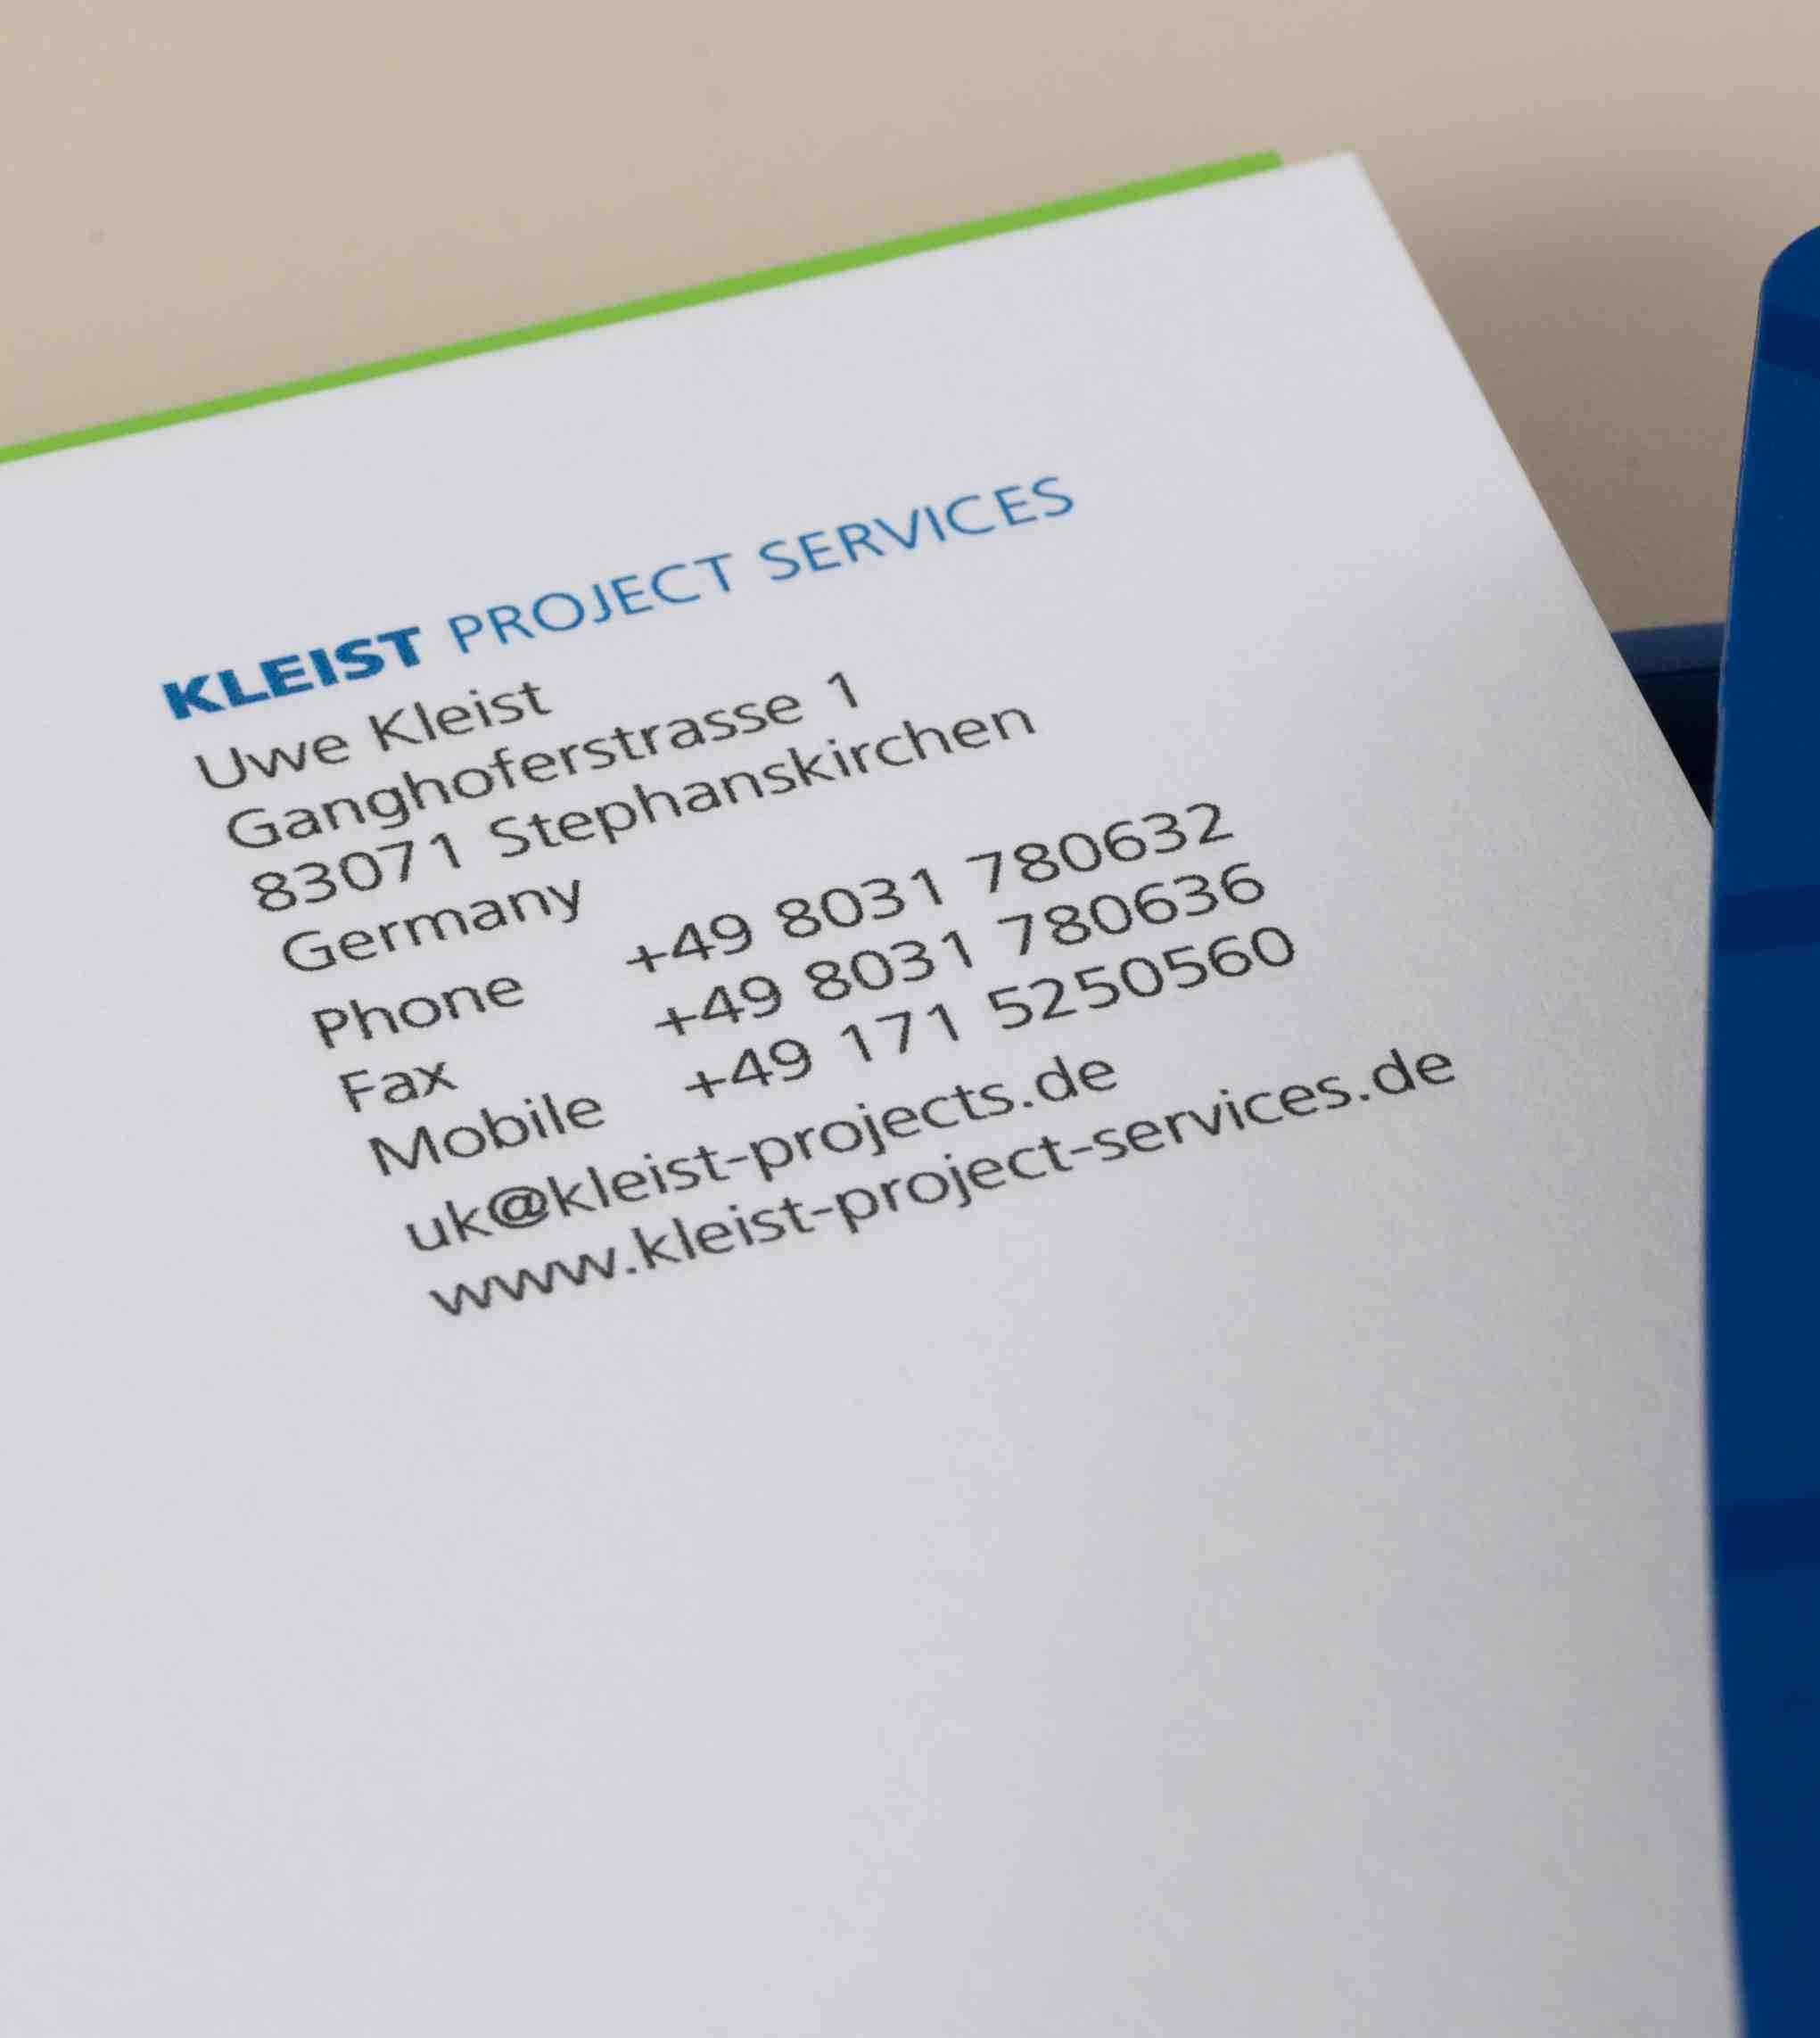 KLEIST Project Services, eMail